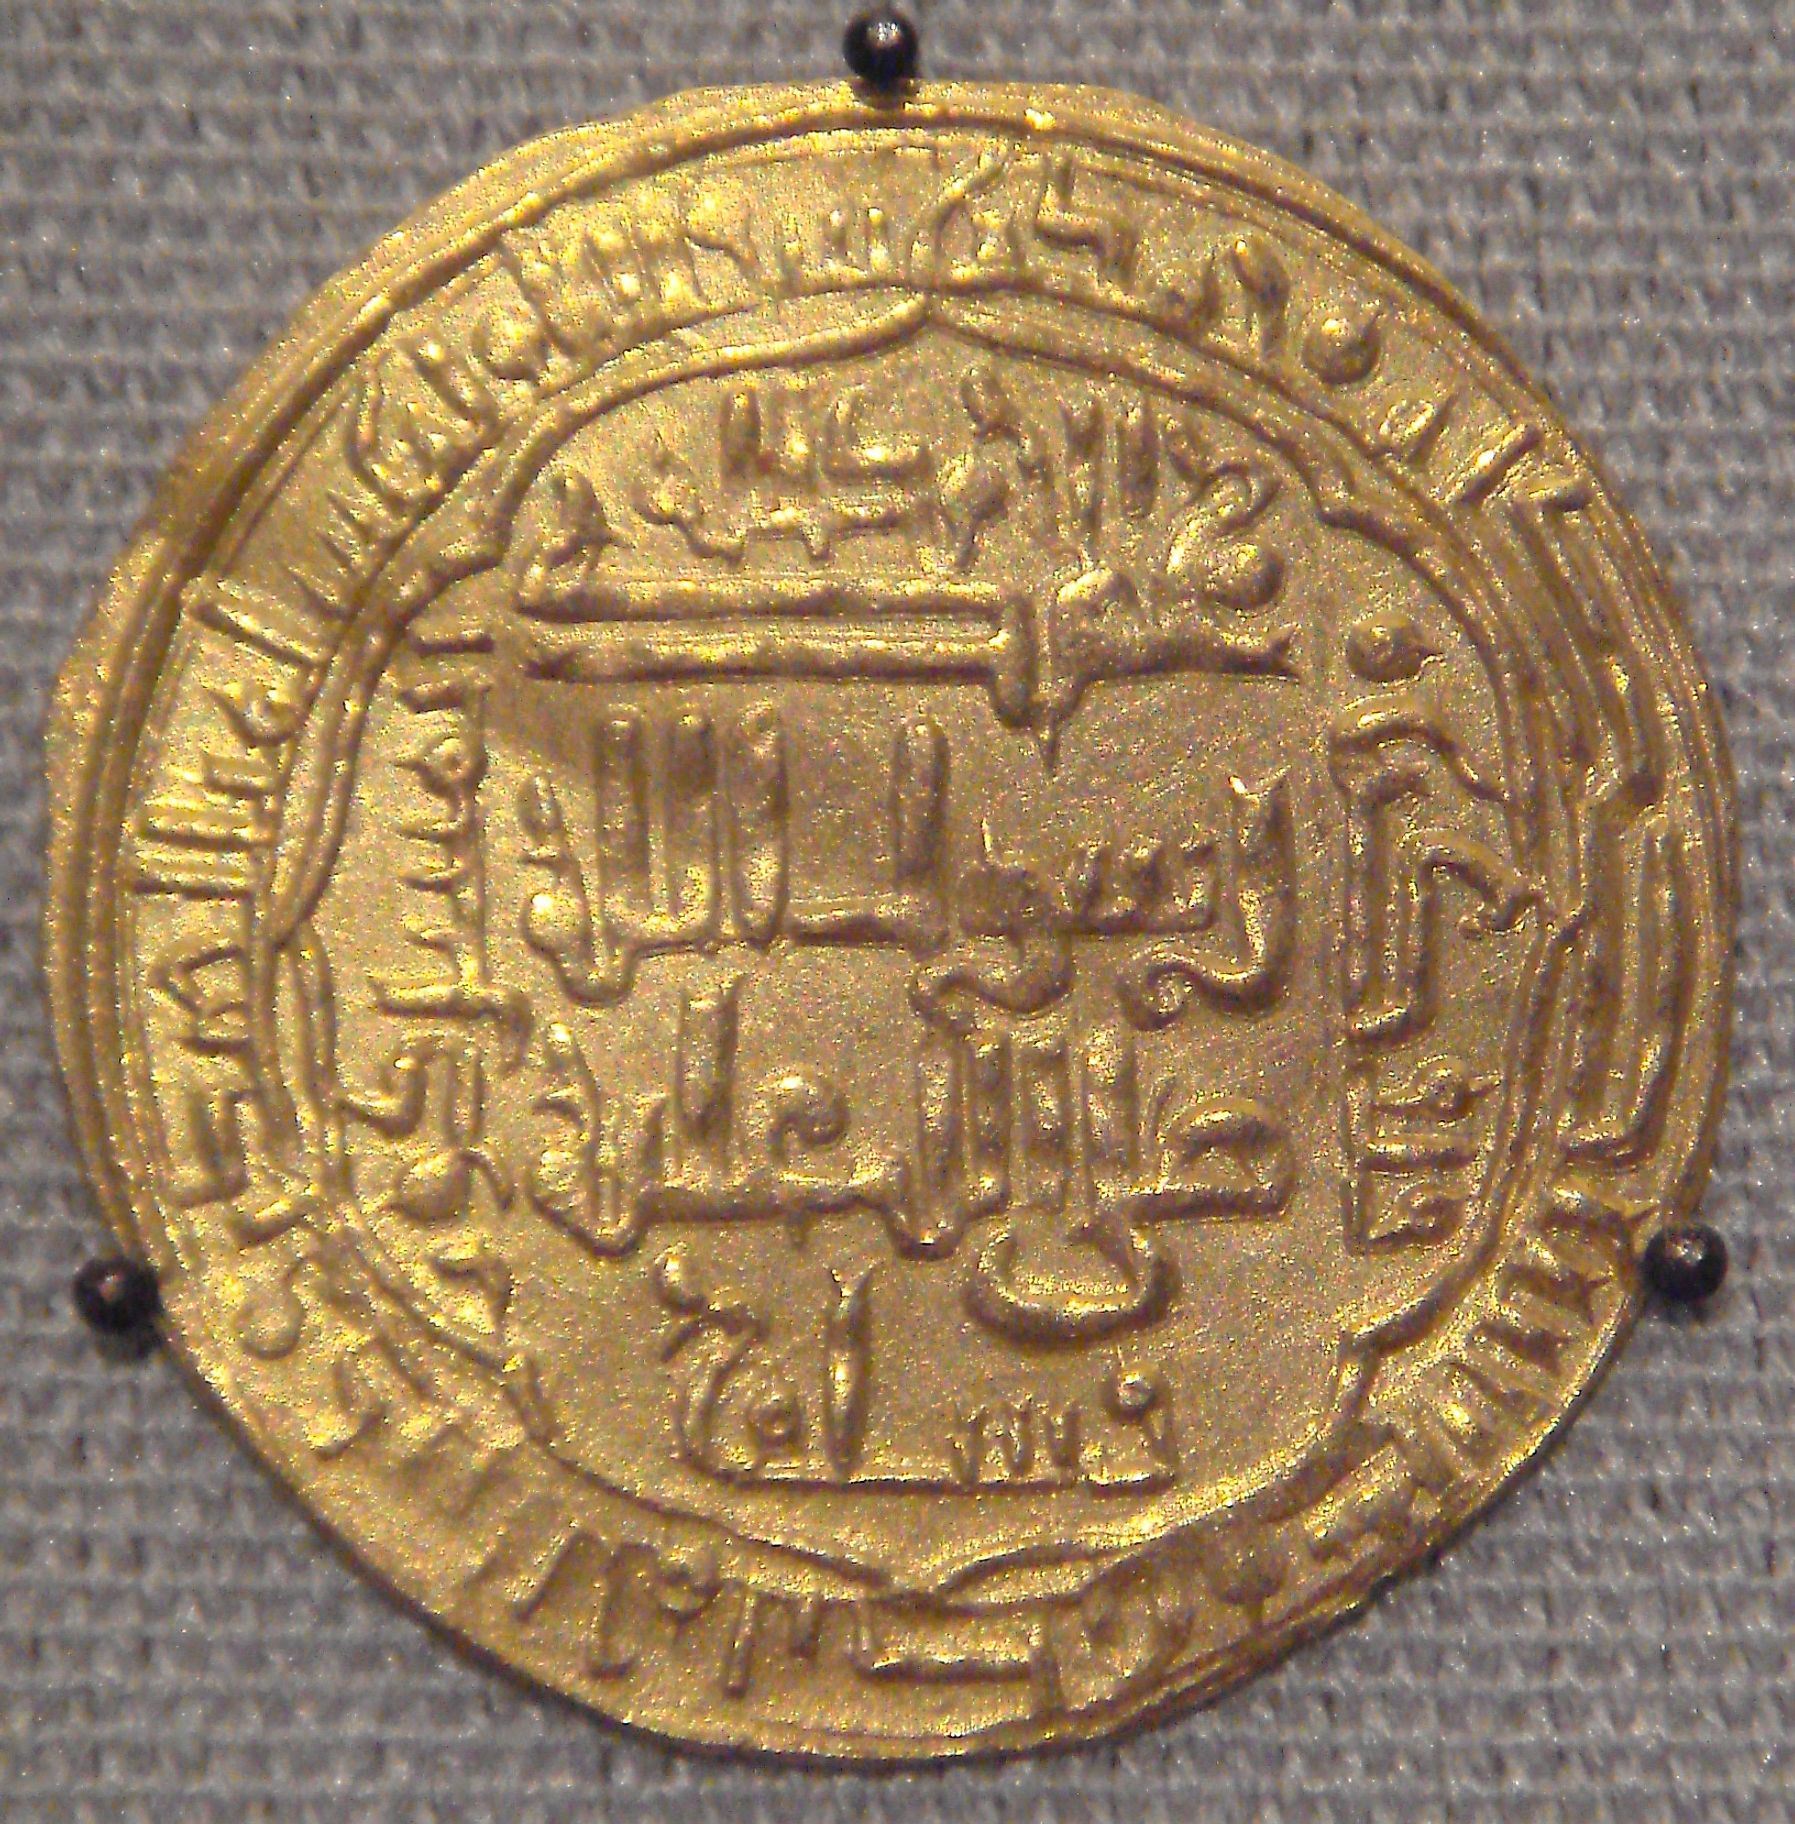 A gold coin belonging to the Abbasid Caliphate.